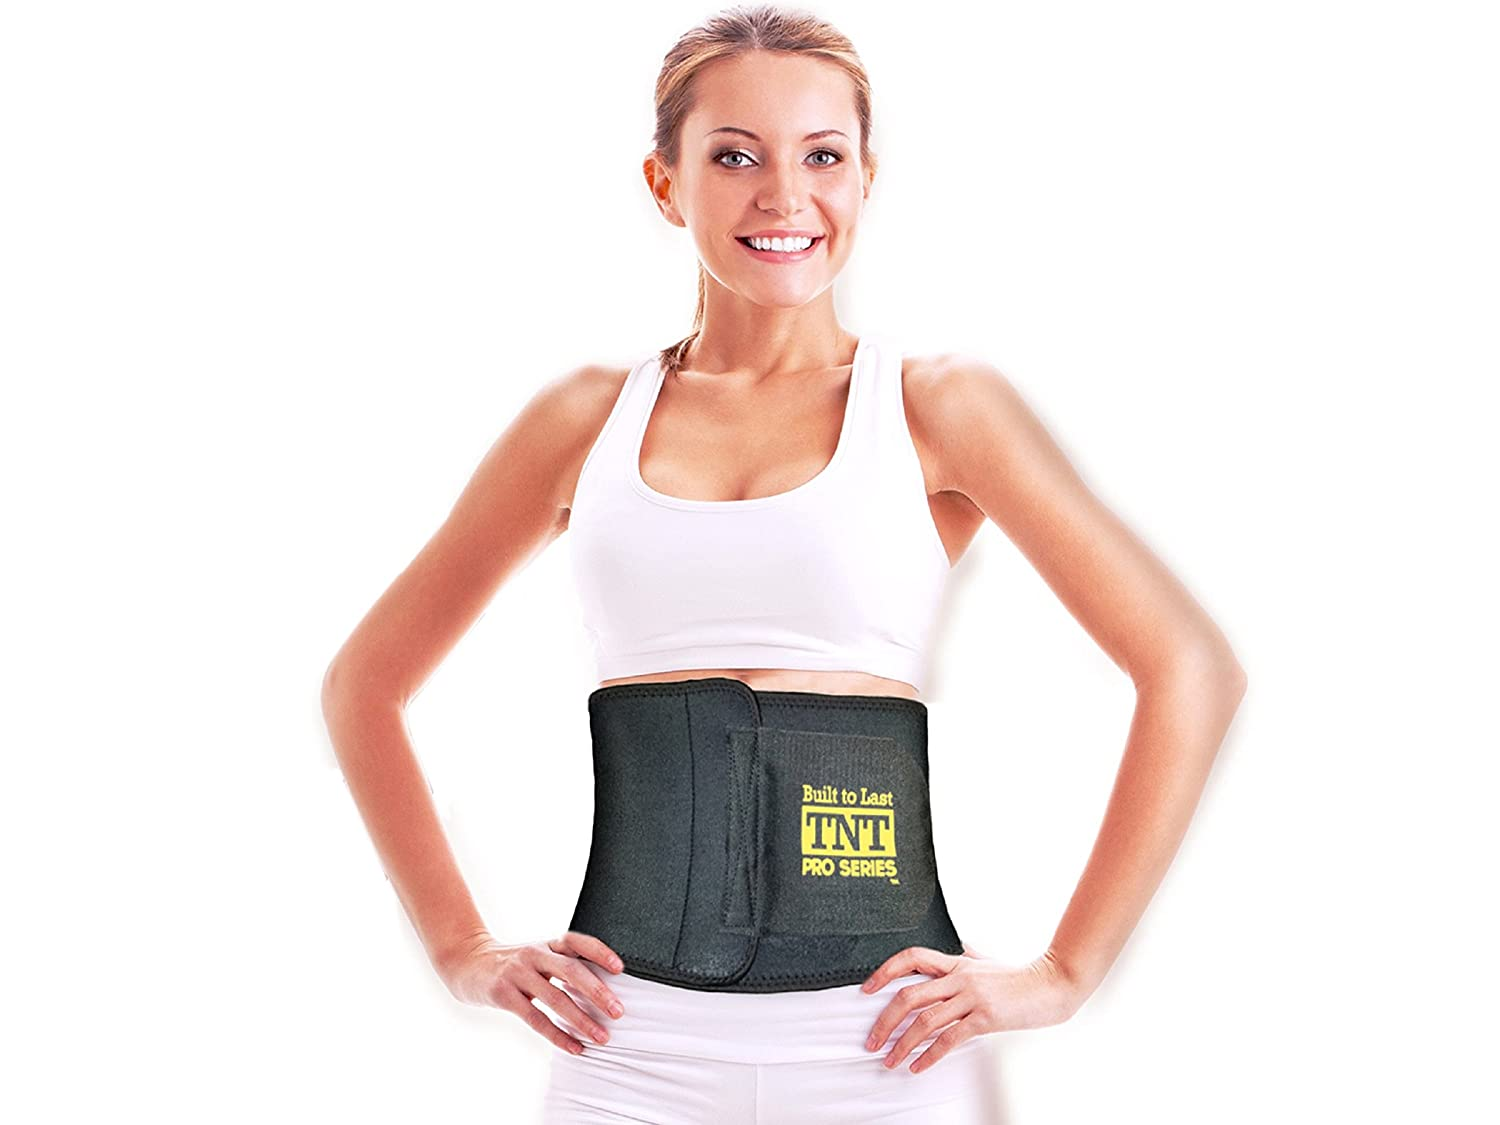 8ddb8a0e8b Amazon.com  TNT Pro Series Waist Trimmer Weight Loss Ab Belt - Premium  Stomach Fat Burner Sweat Wrap and Workout Waist Trainer  Sports   Outdoors